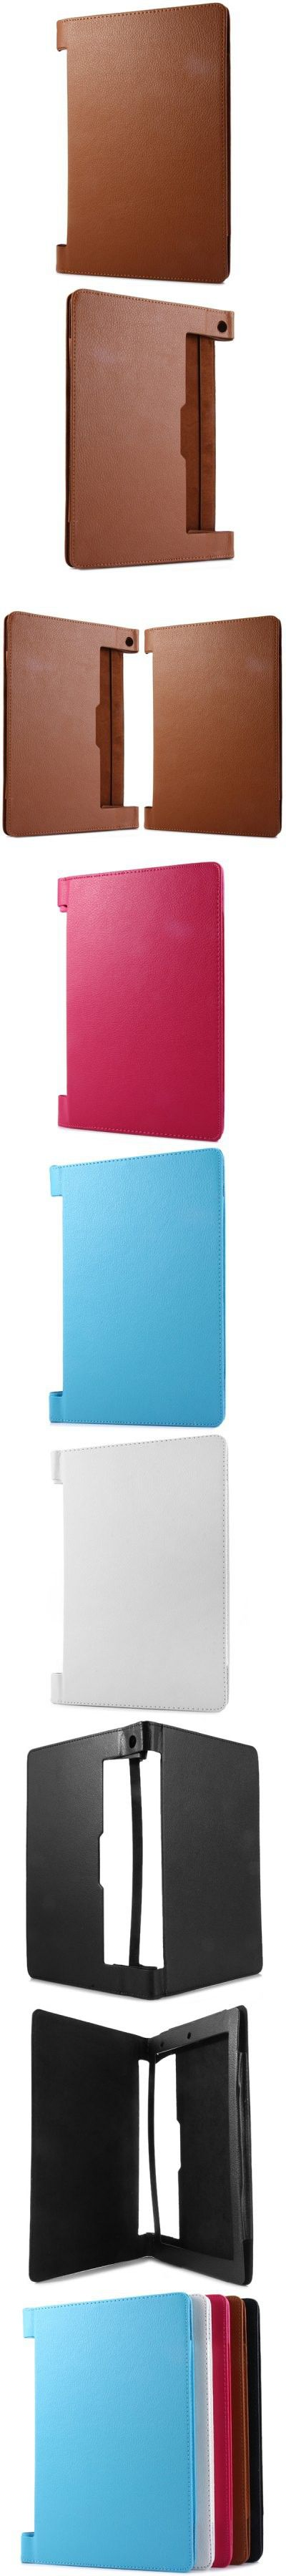 10.1 inch Tablet Protective Case Cover Full Protection Design Stand Function for Lenovo B8000 Tablet PC -$5.2